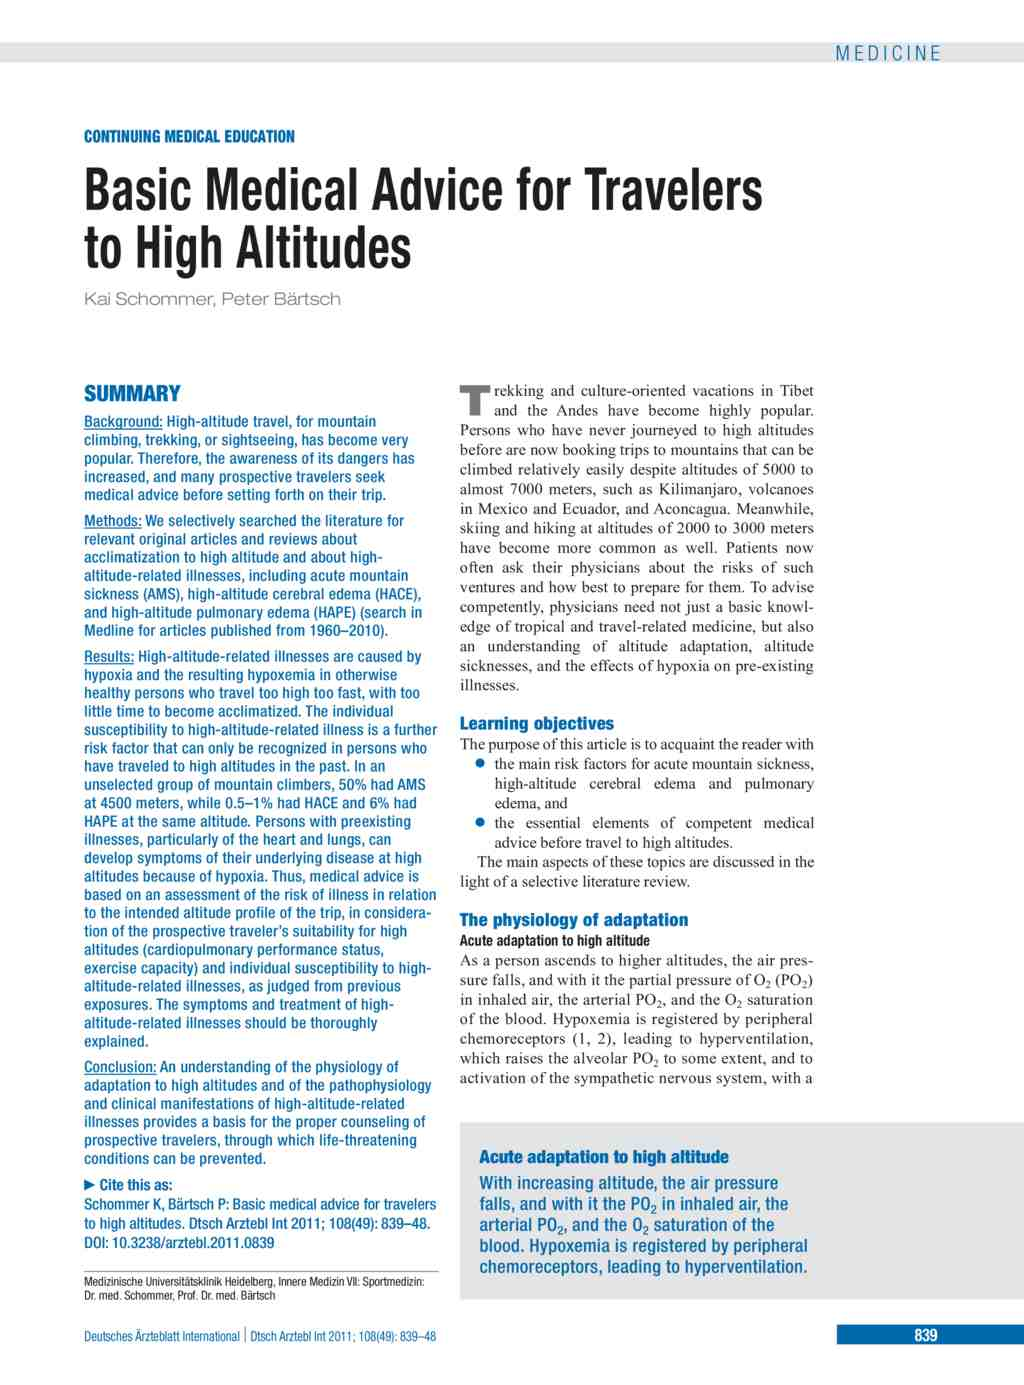 Basic Medical Advice for Travelers to High Altitudes (09.12.2011)